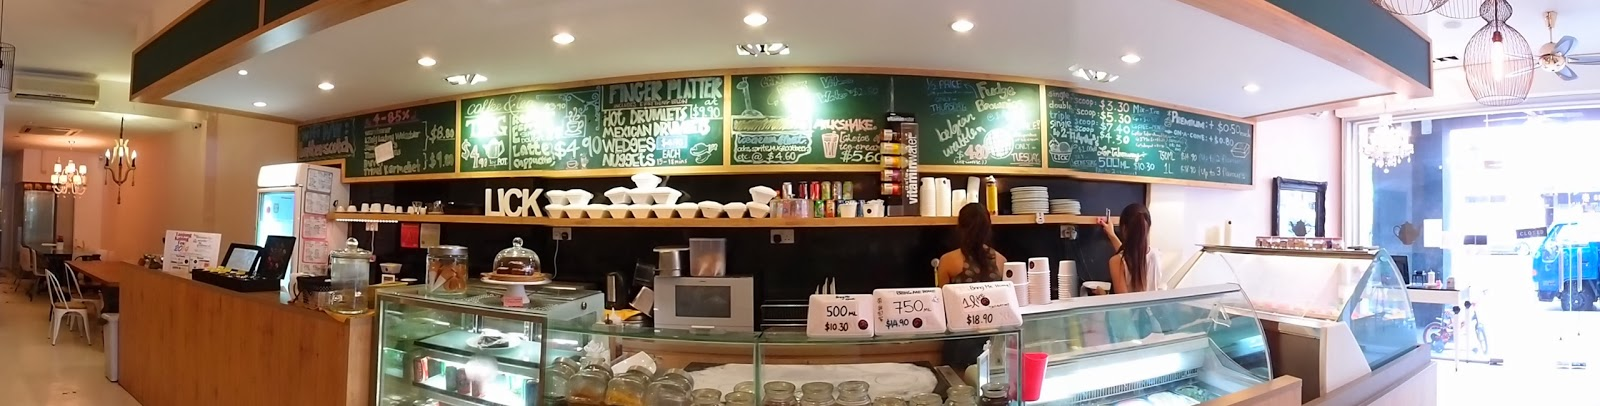 Tanjong Katong Singapore Cafe